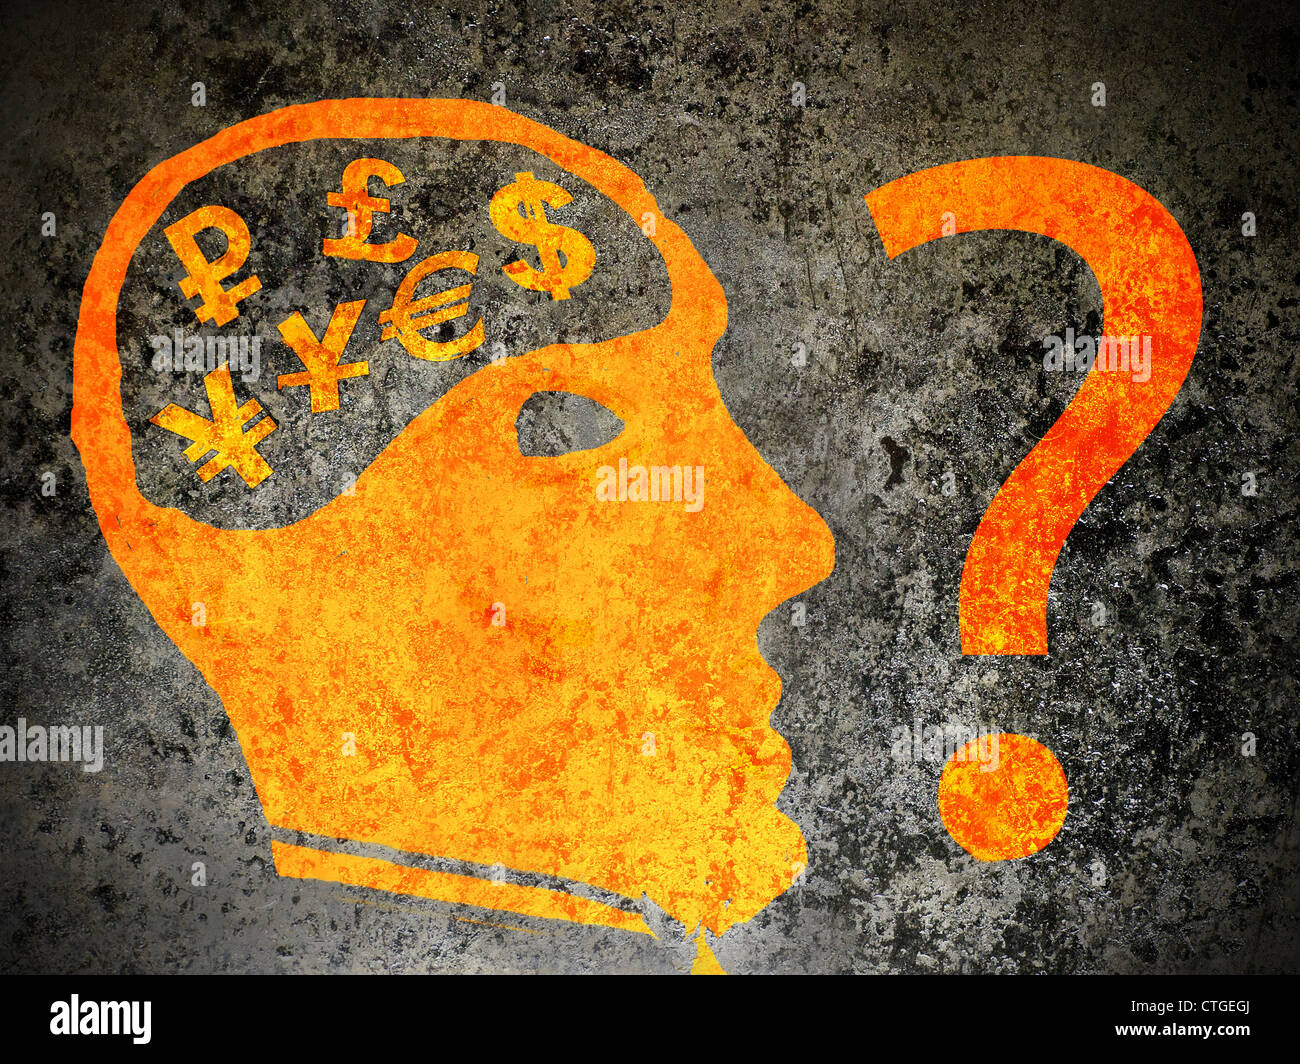 economy confusion concept orange on black illustration - Stock Image